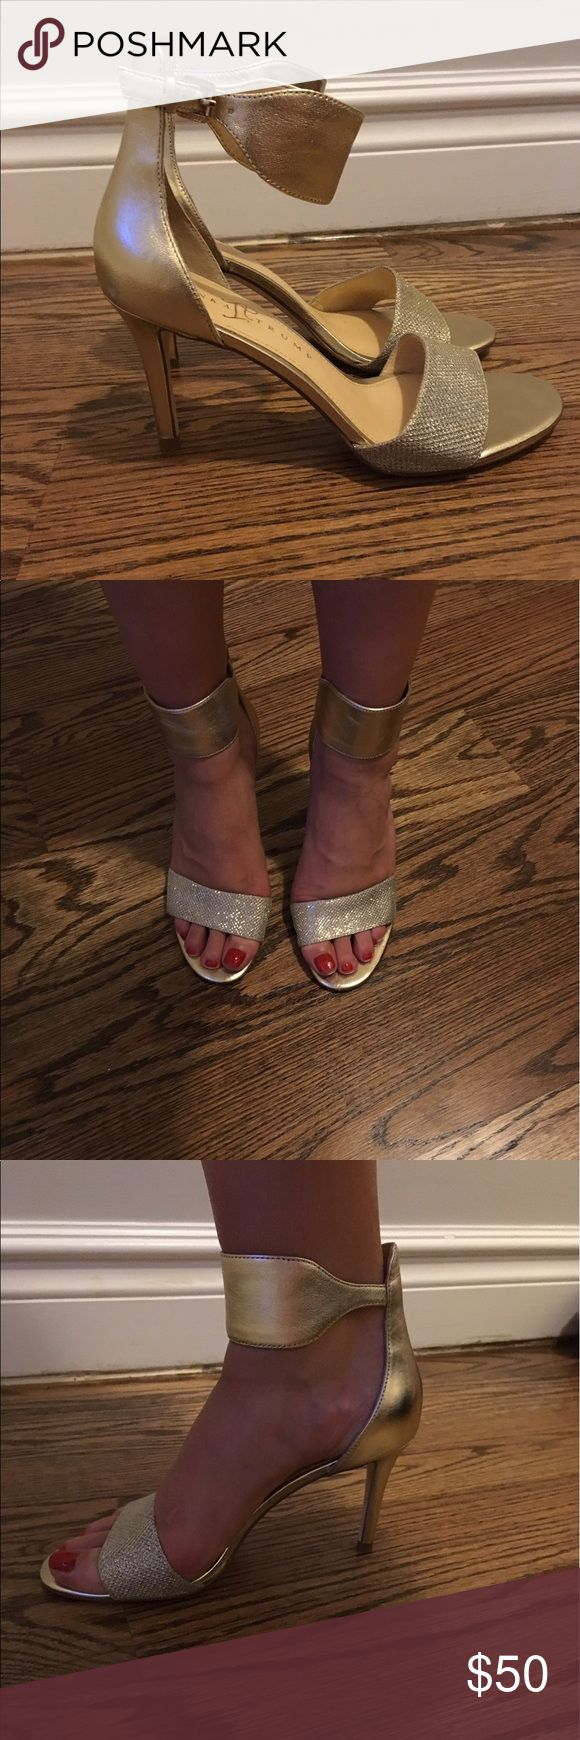 Ivanka Trump Gelana 3 gold sandal heel 7.5 Ivanka Trump Gelana 3 gold open-toe heel in size 7.5. Heel is 3.5 inches. Worn once to an event. There is a little scratch on the left shoe on the side of the ankle strap as seen in the last photo. Not noticeable when wearing. Ivanka Trump Shoes Heels